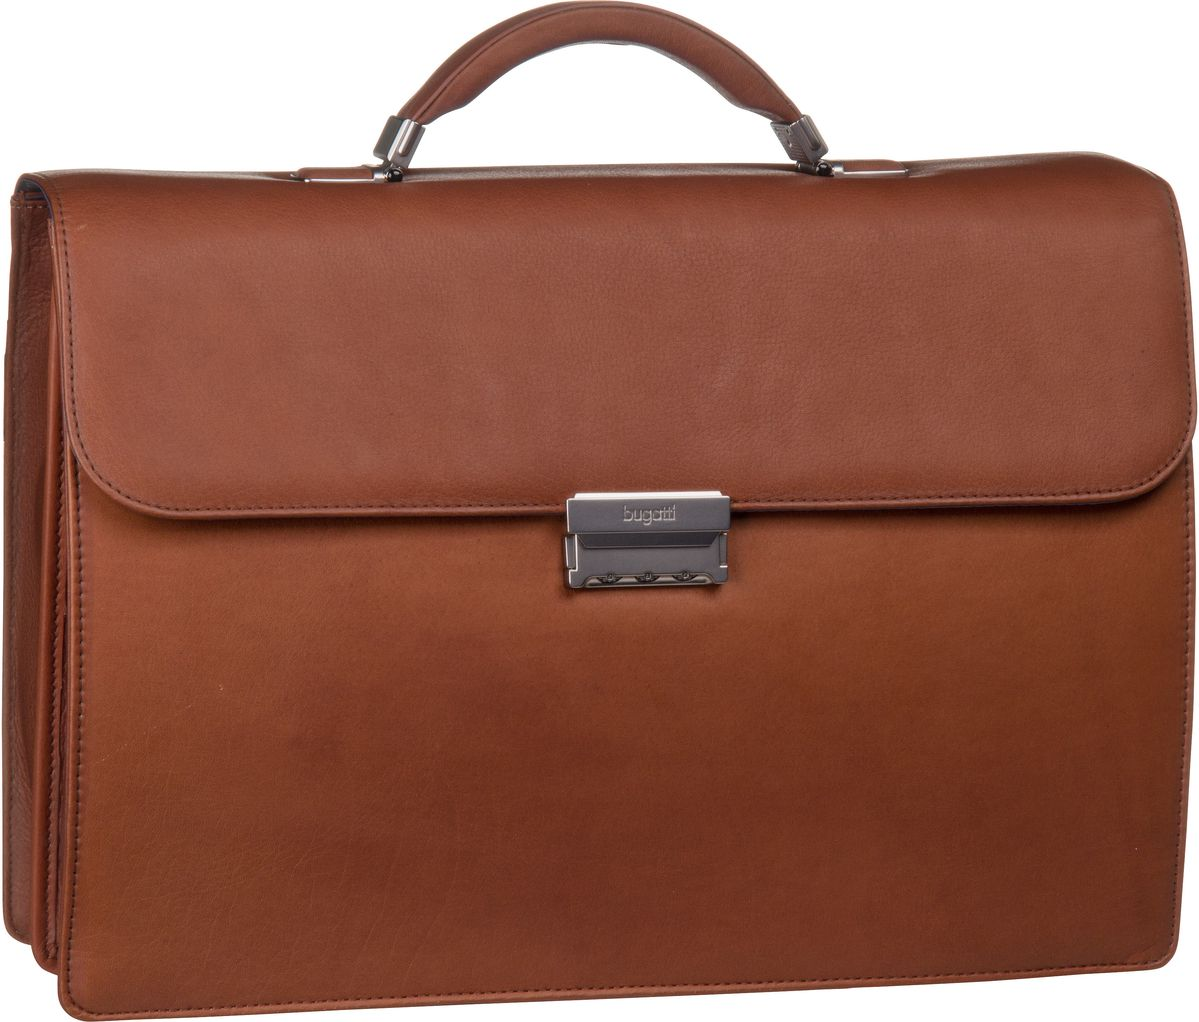 Sartoria Briefcase Medium Cognac